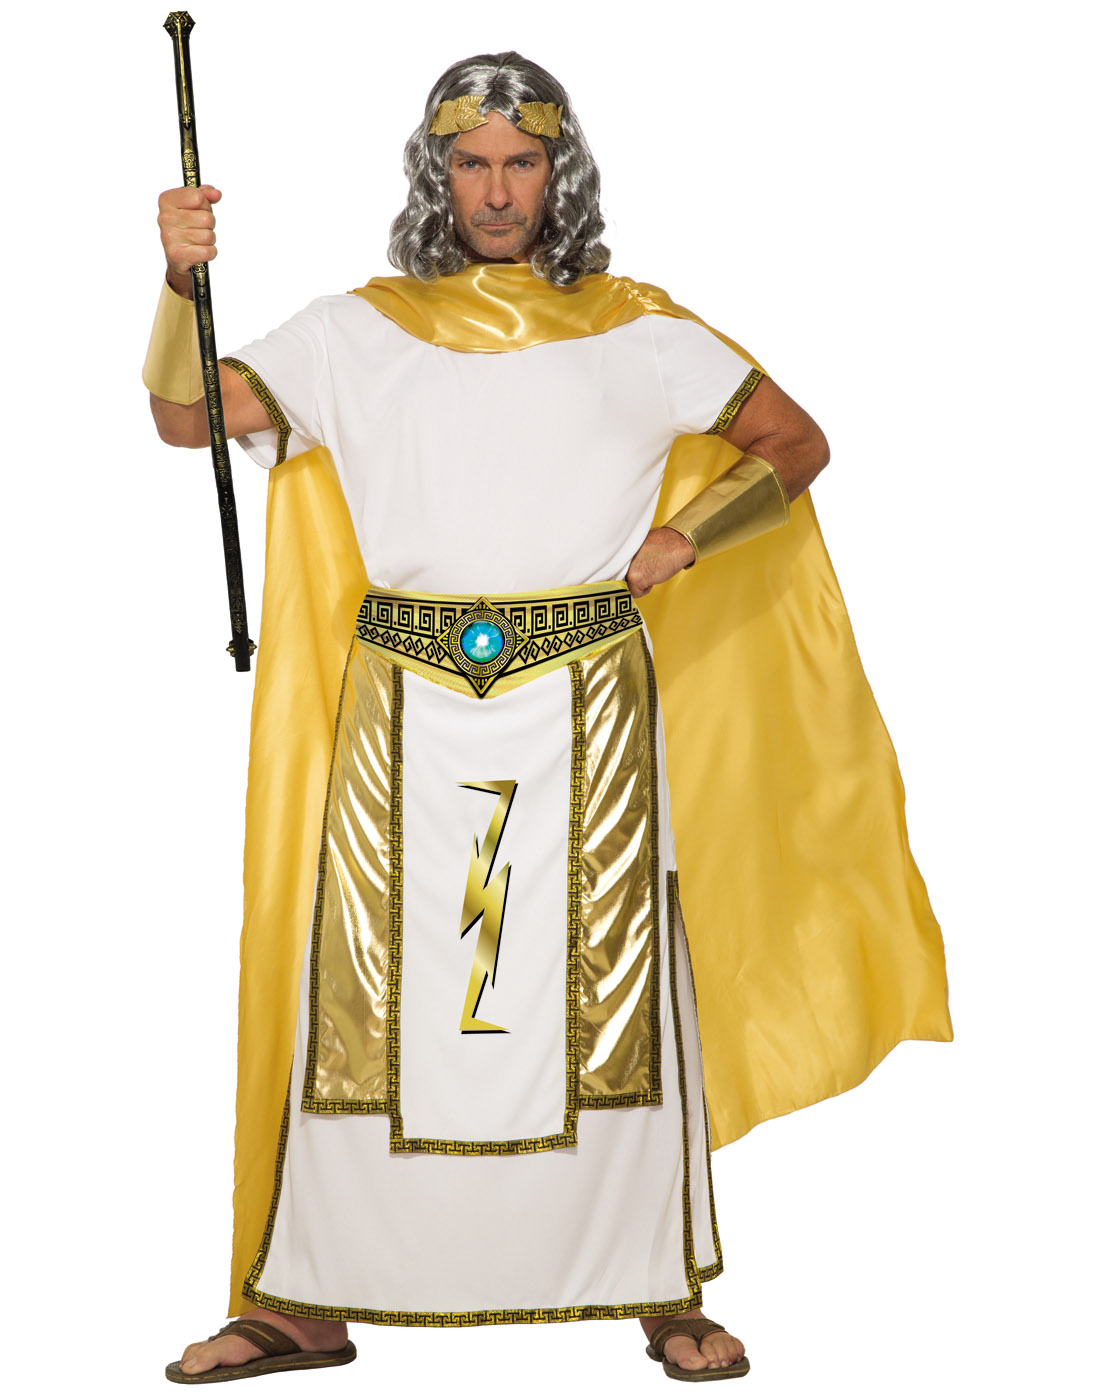 Mythical Creatures Halloween Costumes.Details About Mythical Creature Zeus Mens Adult Greek God Halloween Costume Std